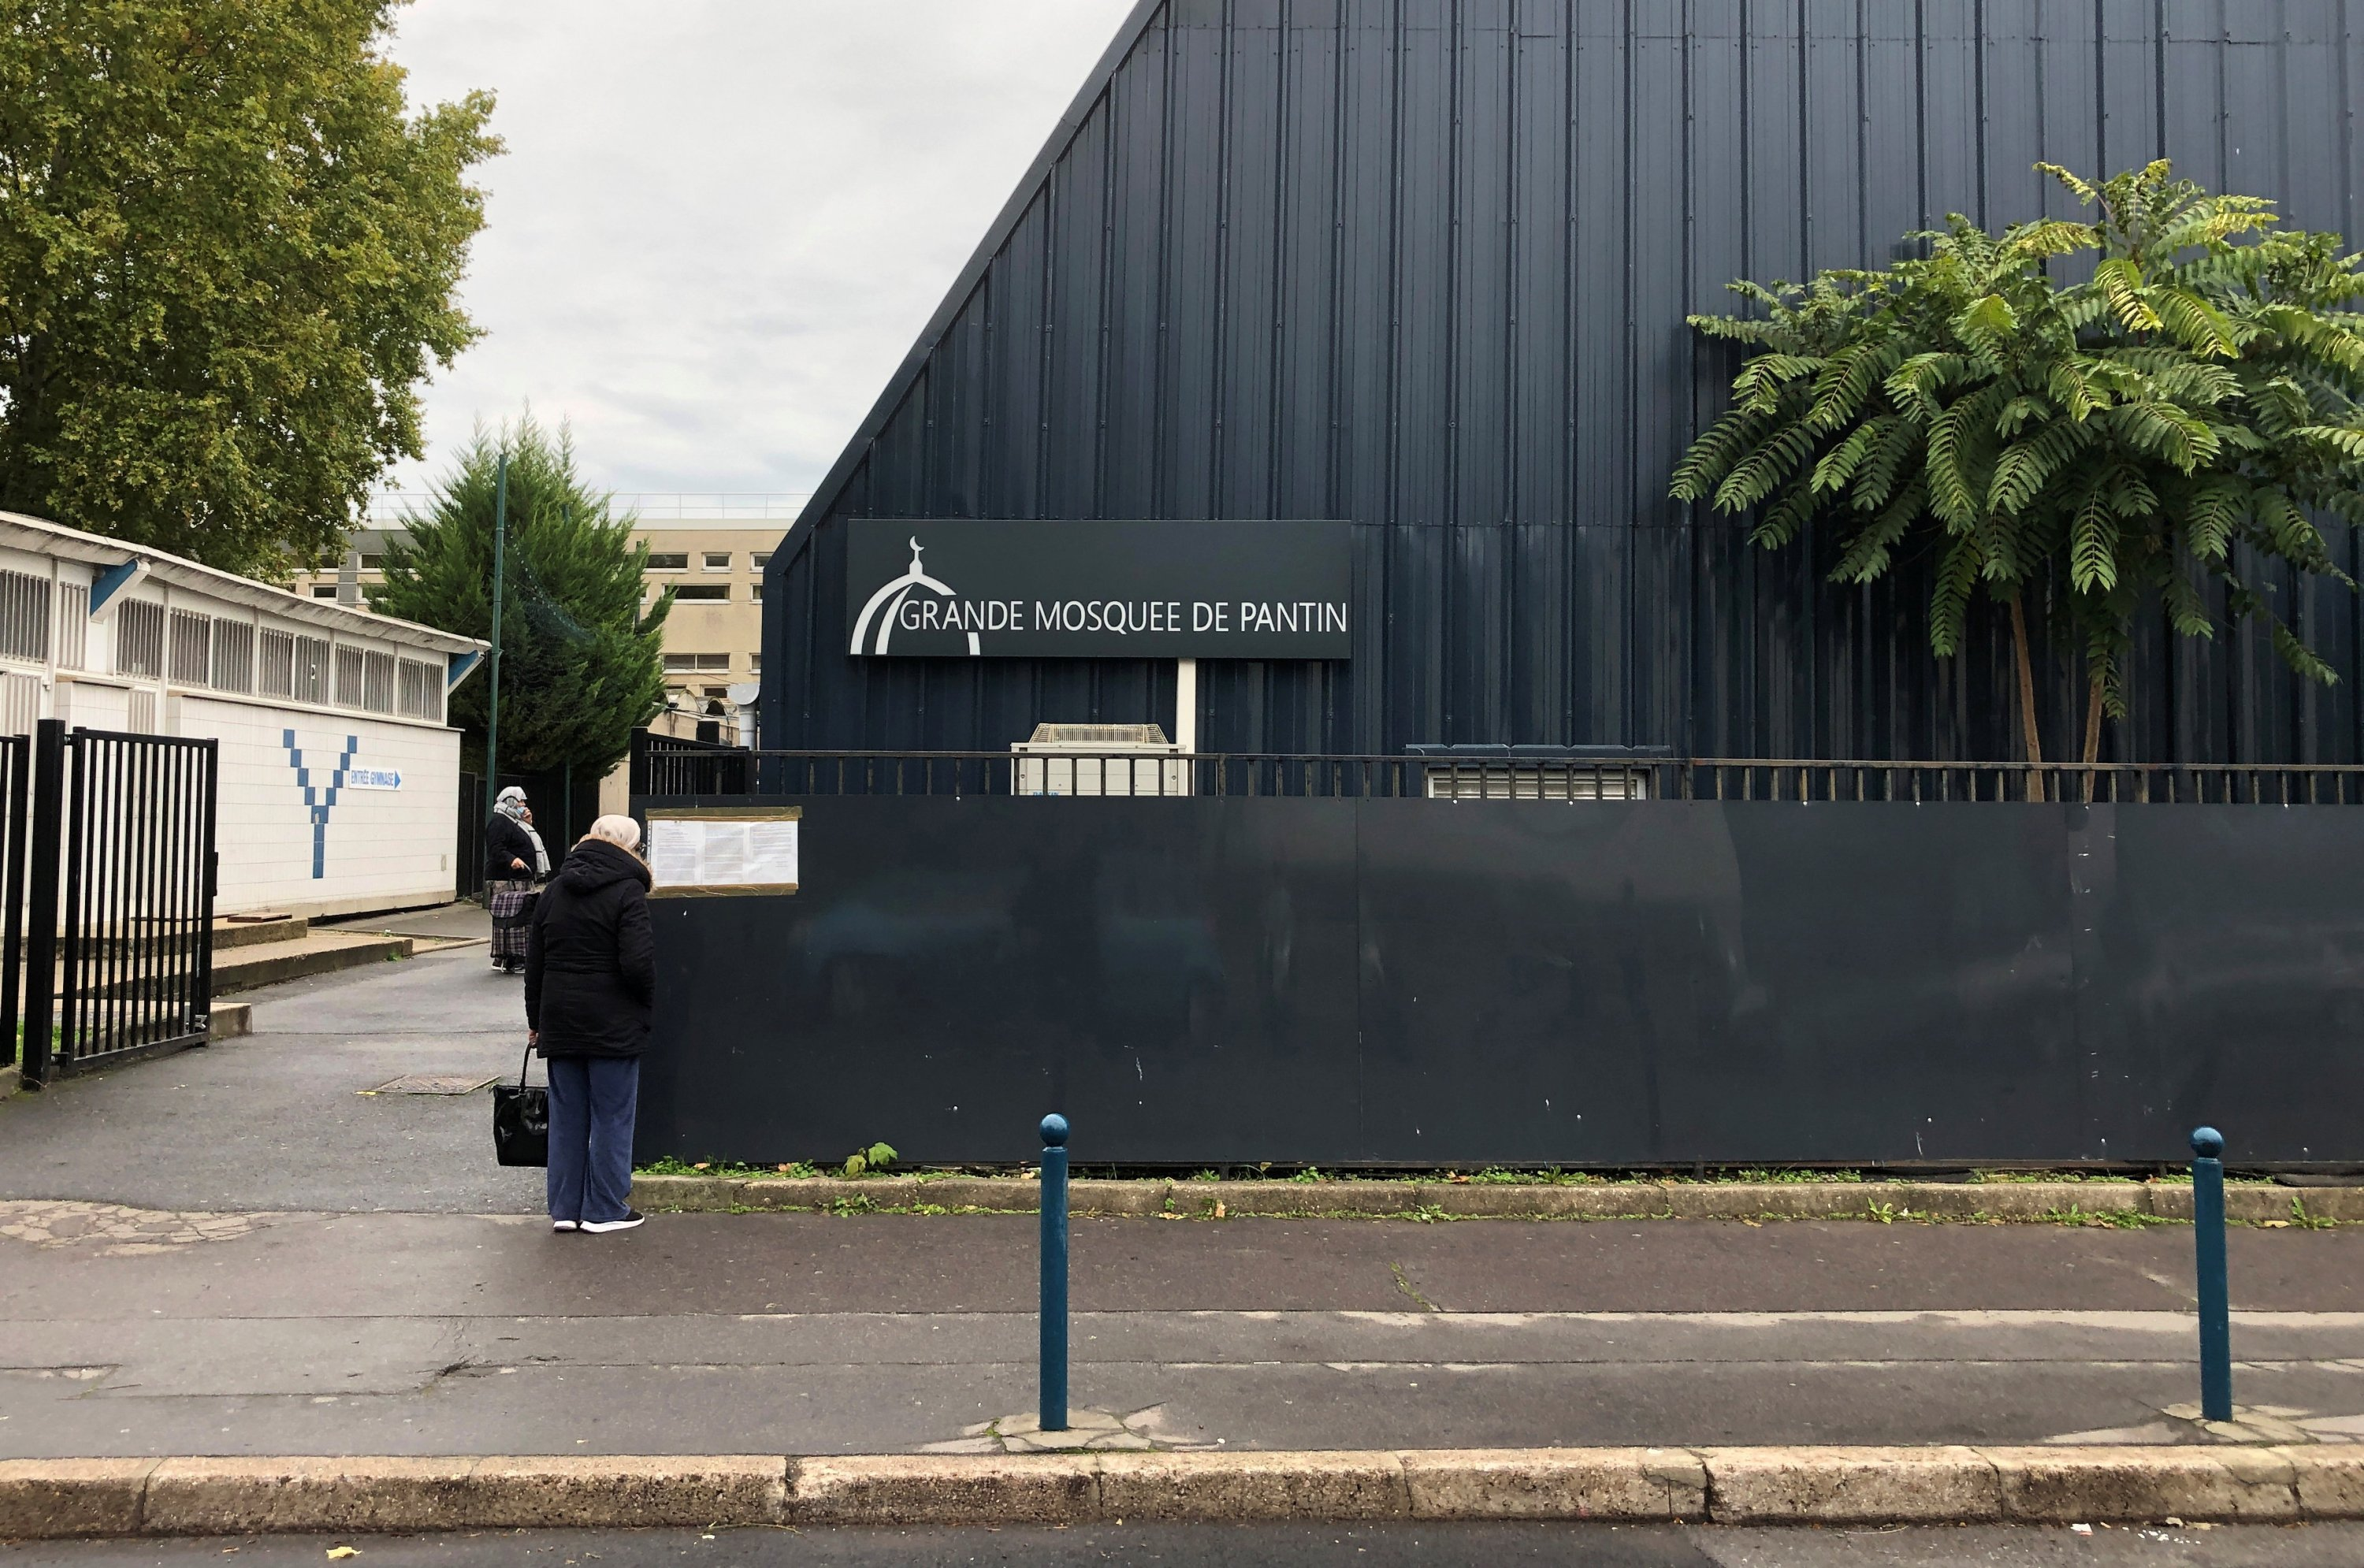 France to inspect nearly 80 mosques in latest crackdown on Muslims due to anti-separatism bill